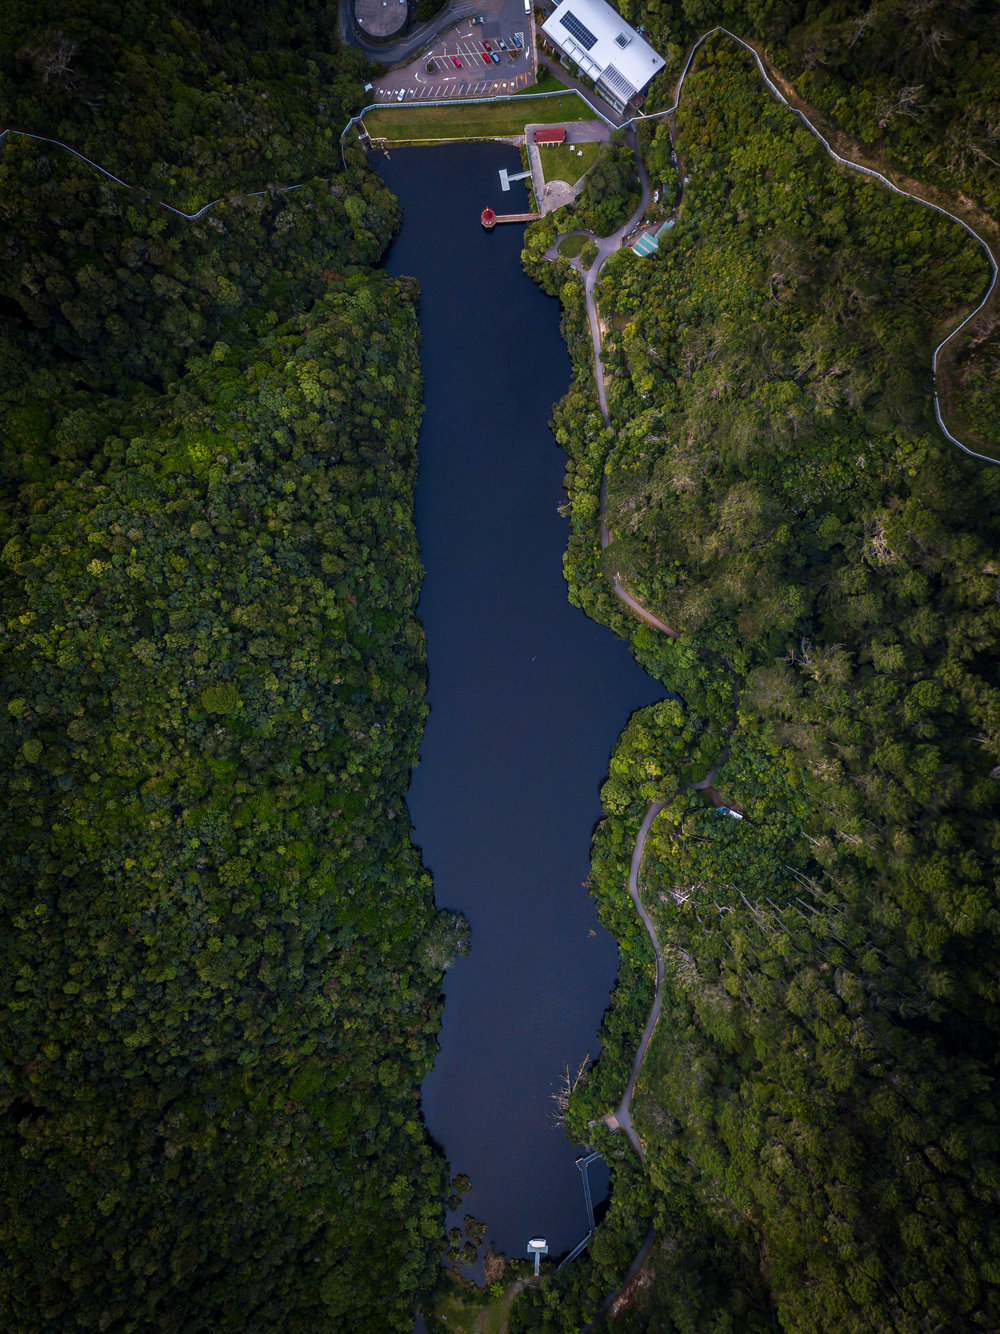 Lake from above